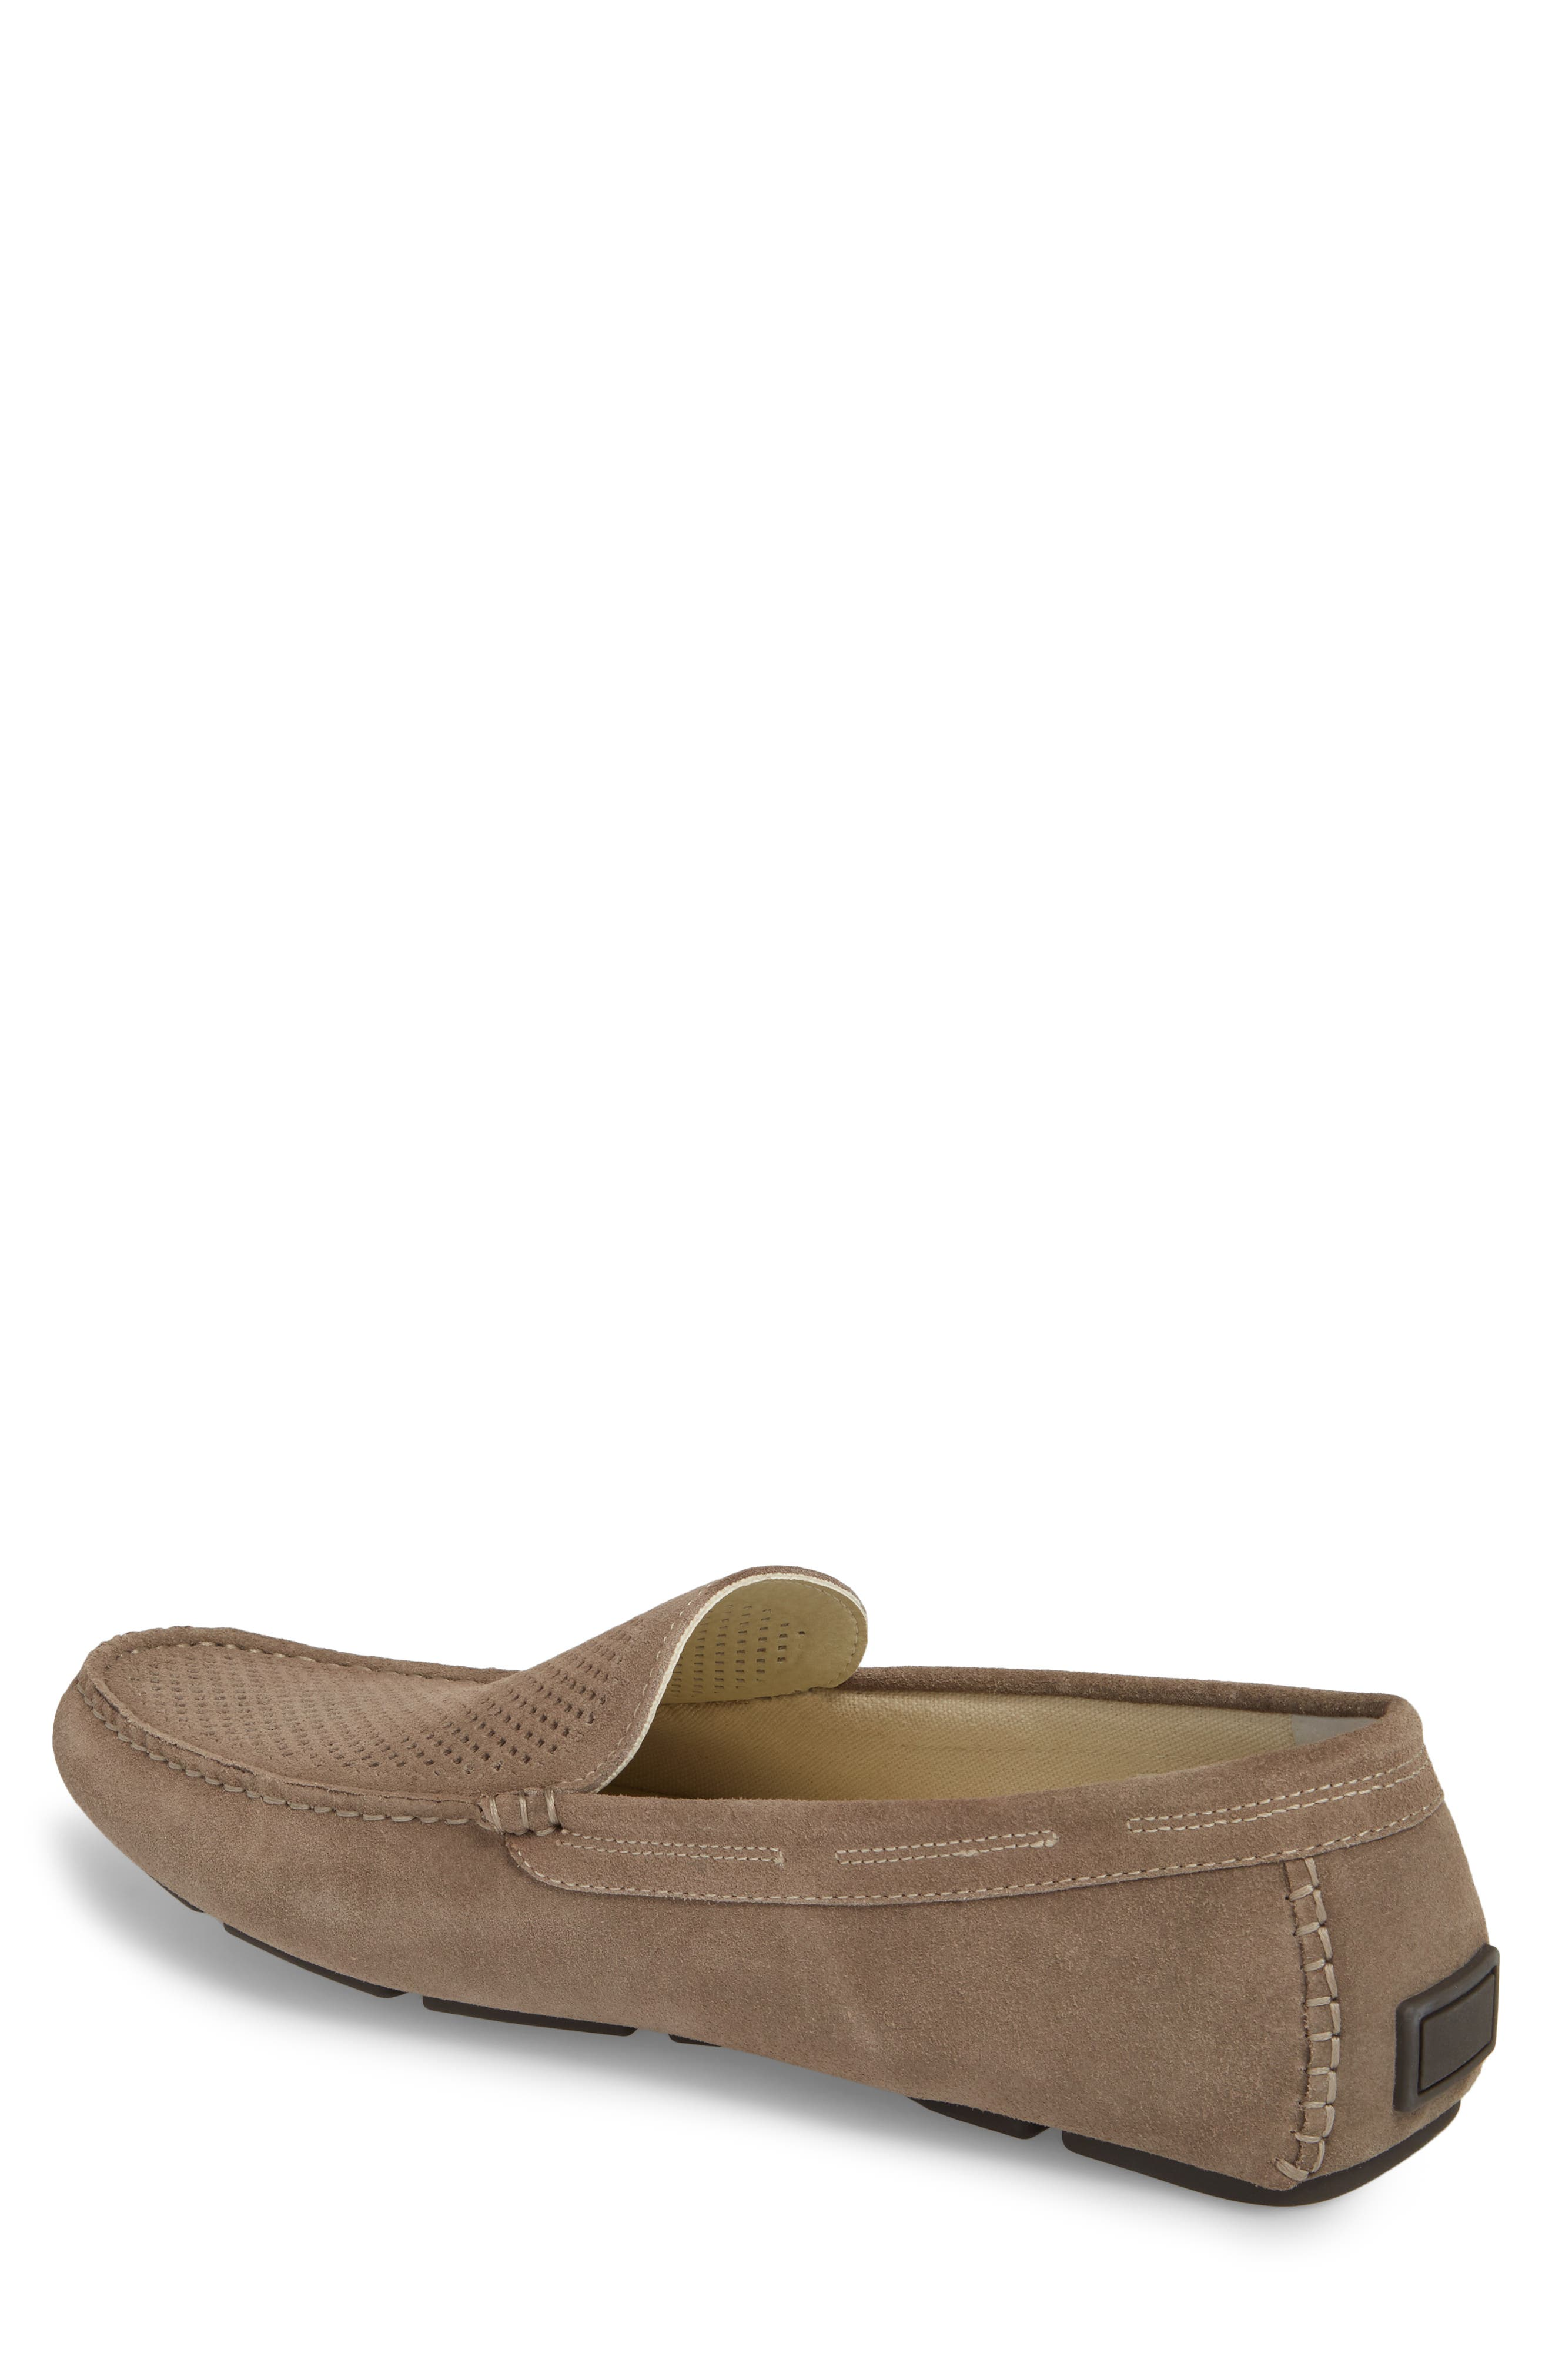 Scottsdale Perforated Driving Moccasin,                             Alternate thumbnail 2, color,                             Grey Suede